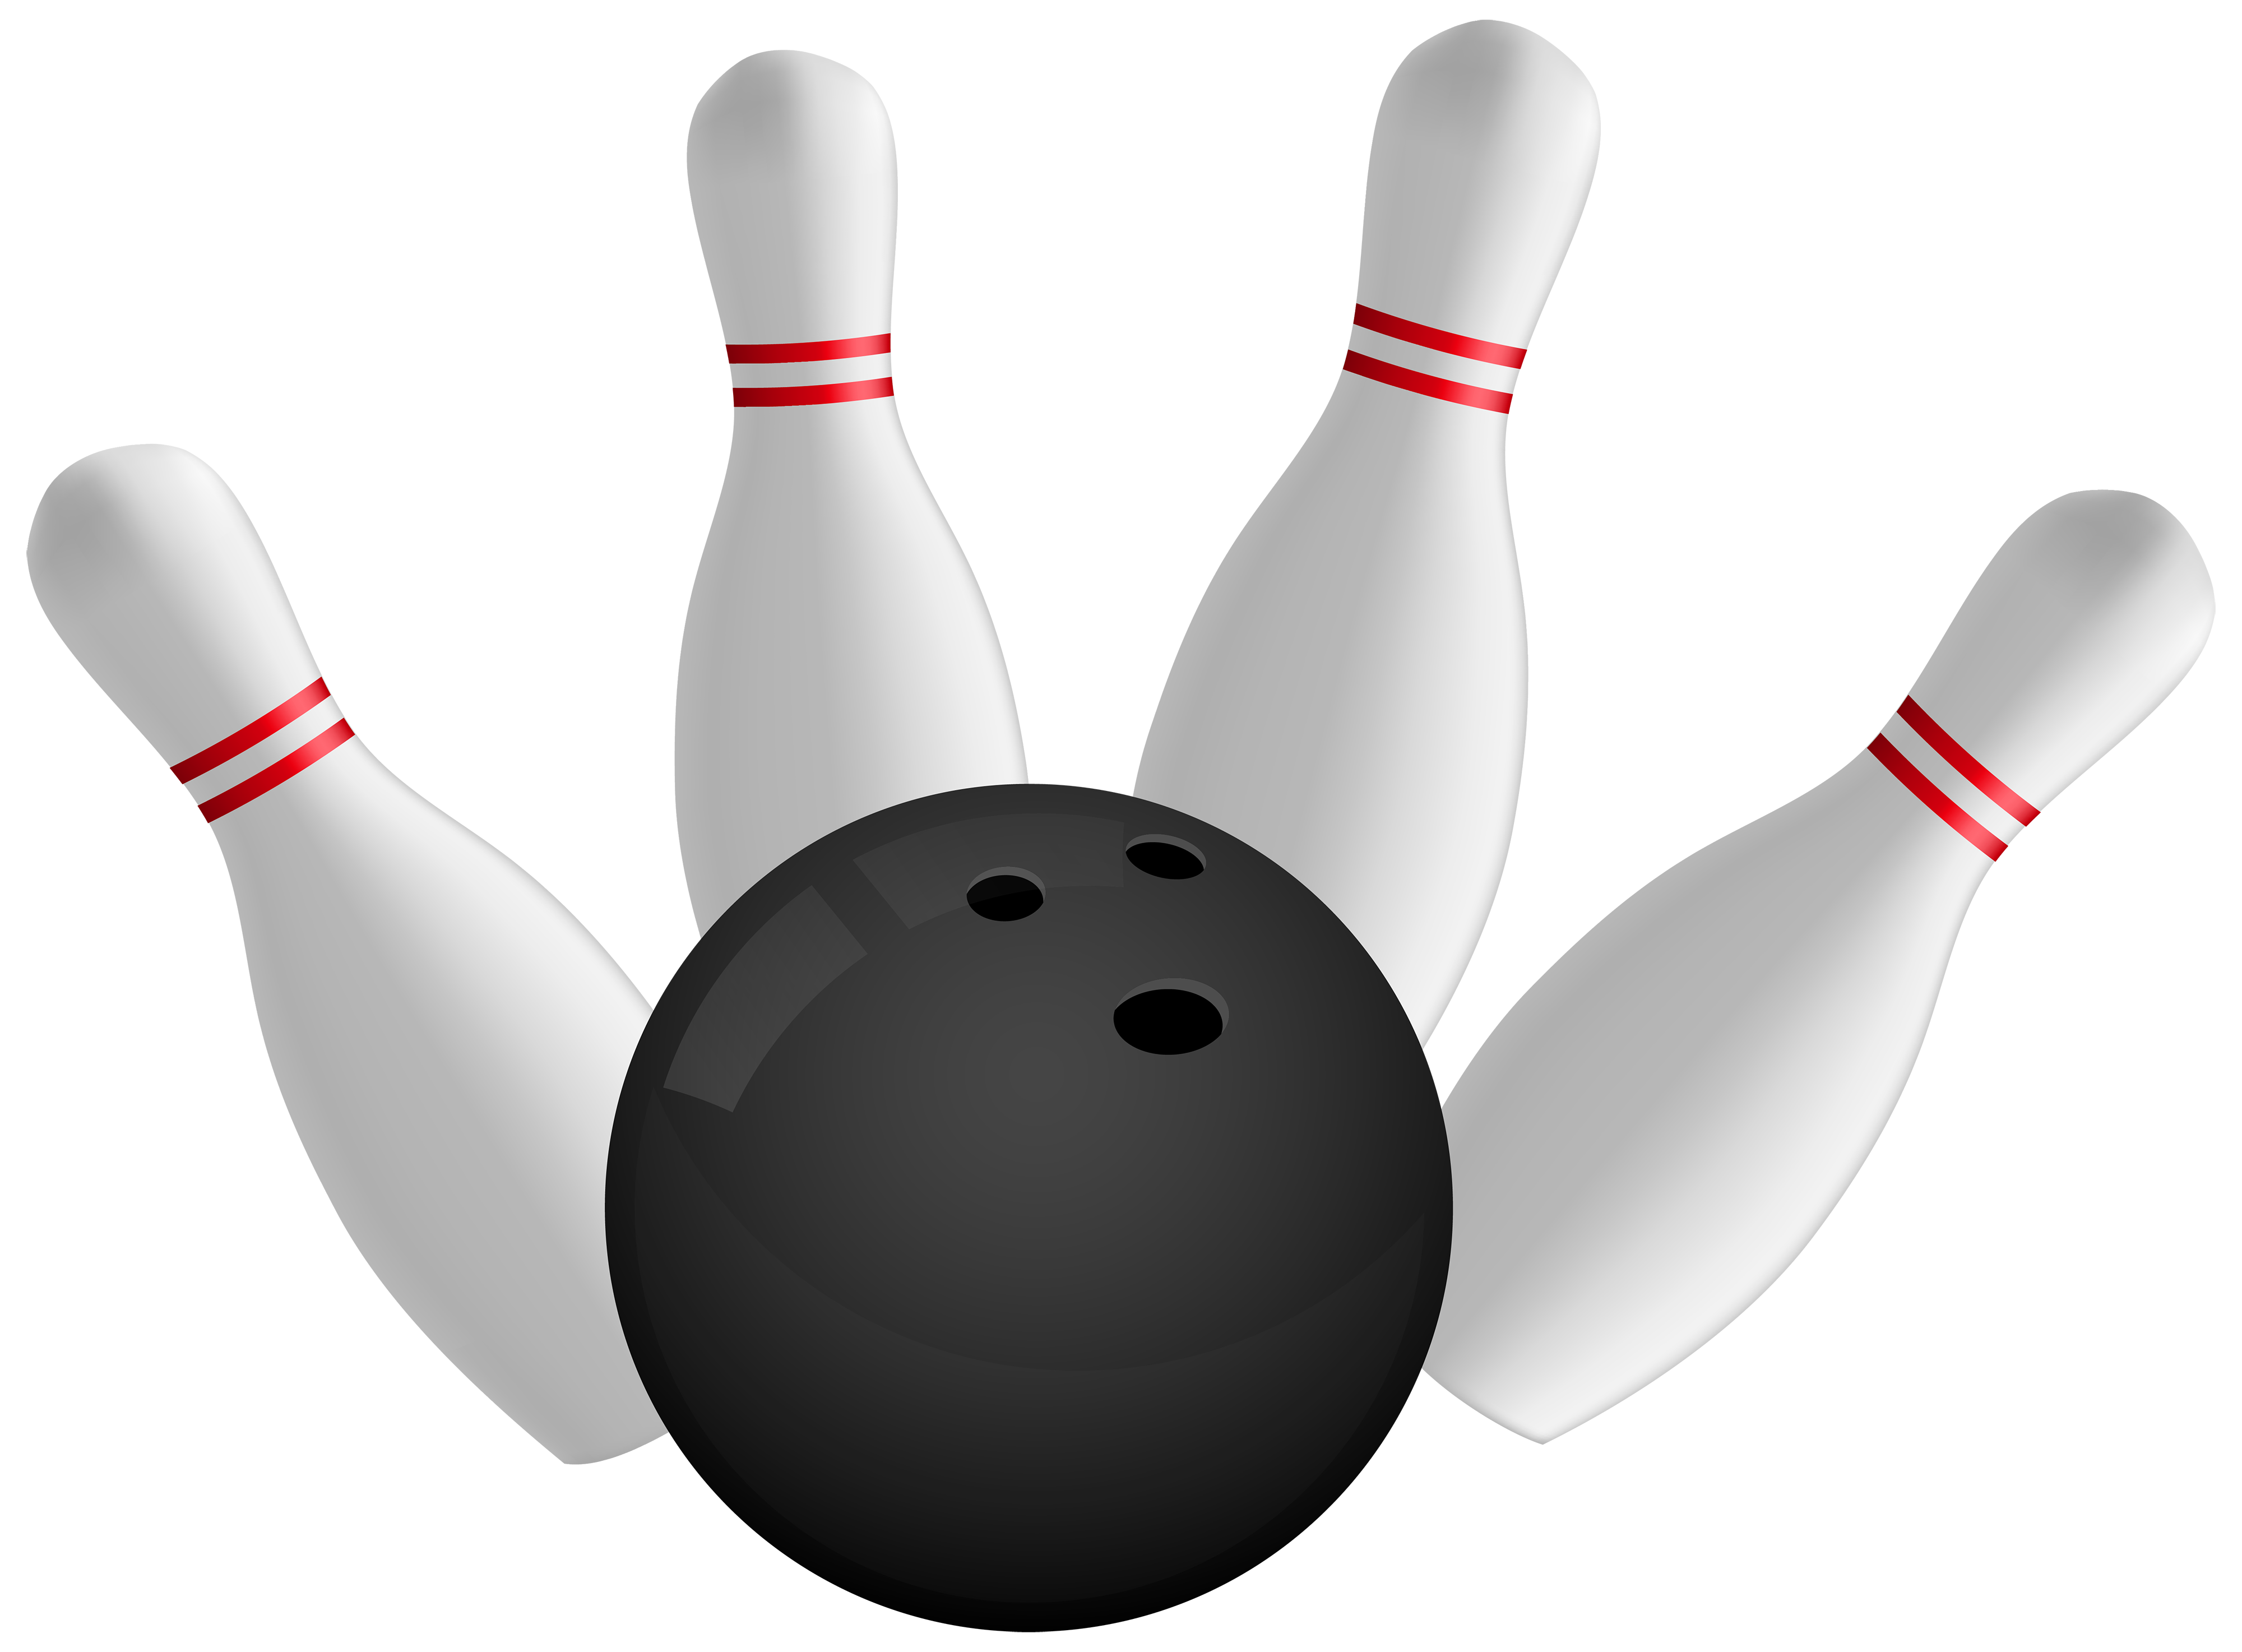 Bowling clipart transparent background. Pin by printer on